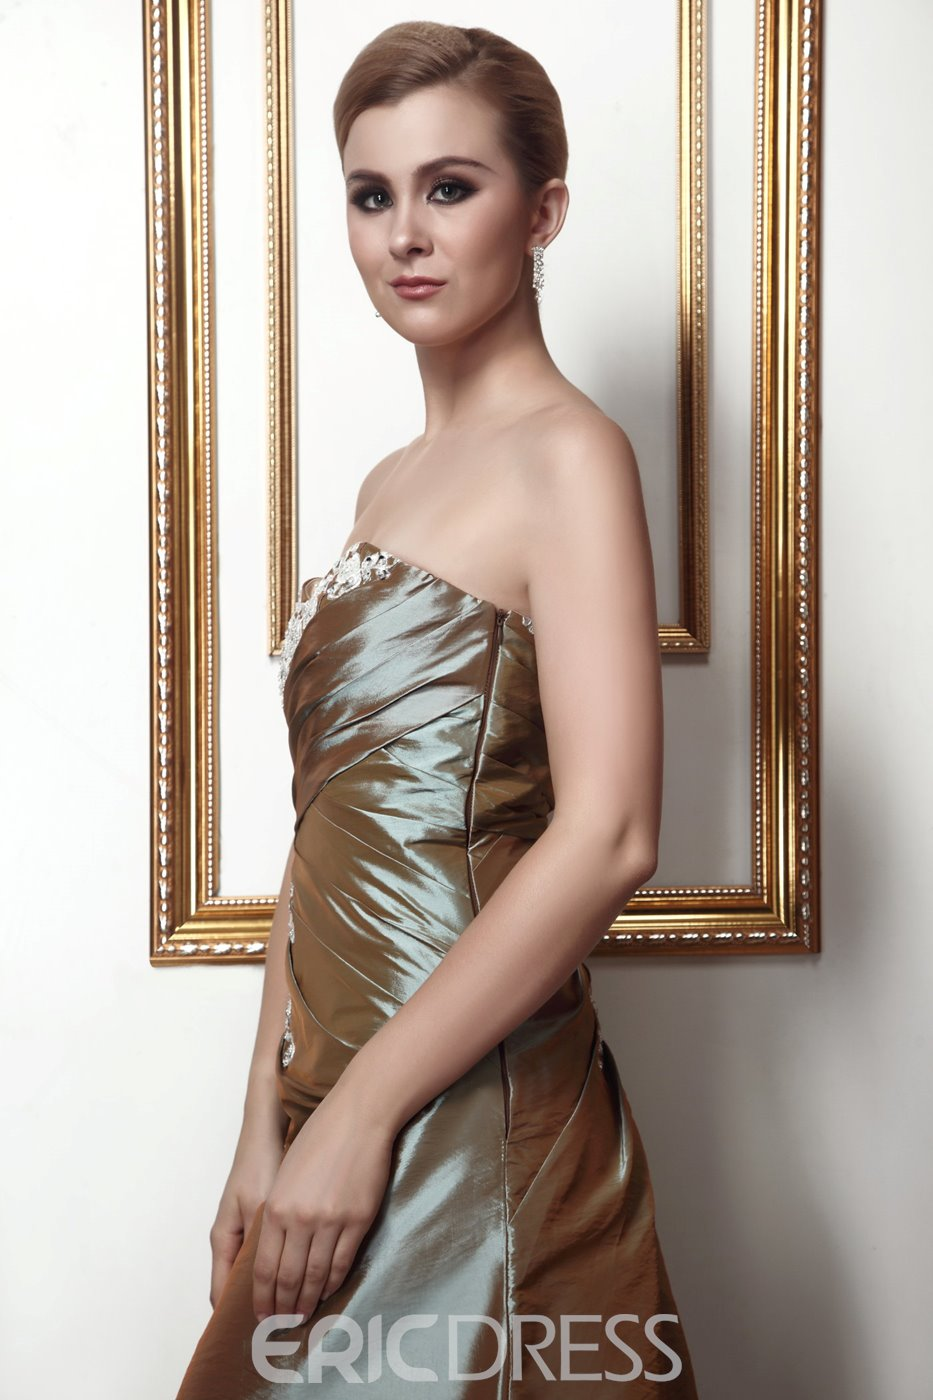 Charming A-Line Sweetheart Neckline Floor-length Alina's Mother of the Bride Dress With Jacket/Shawl